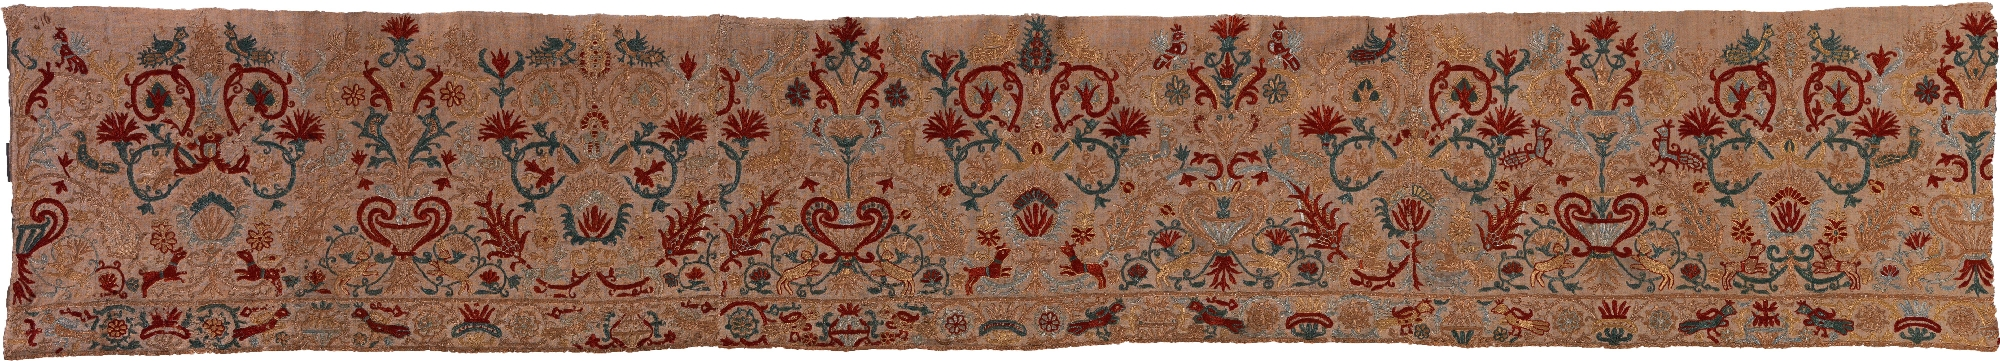 skirt-border-17th-18th-century-web.jpg